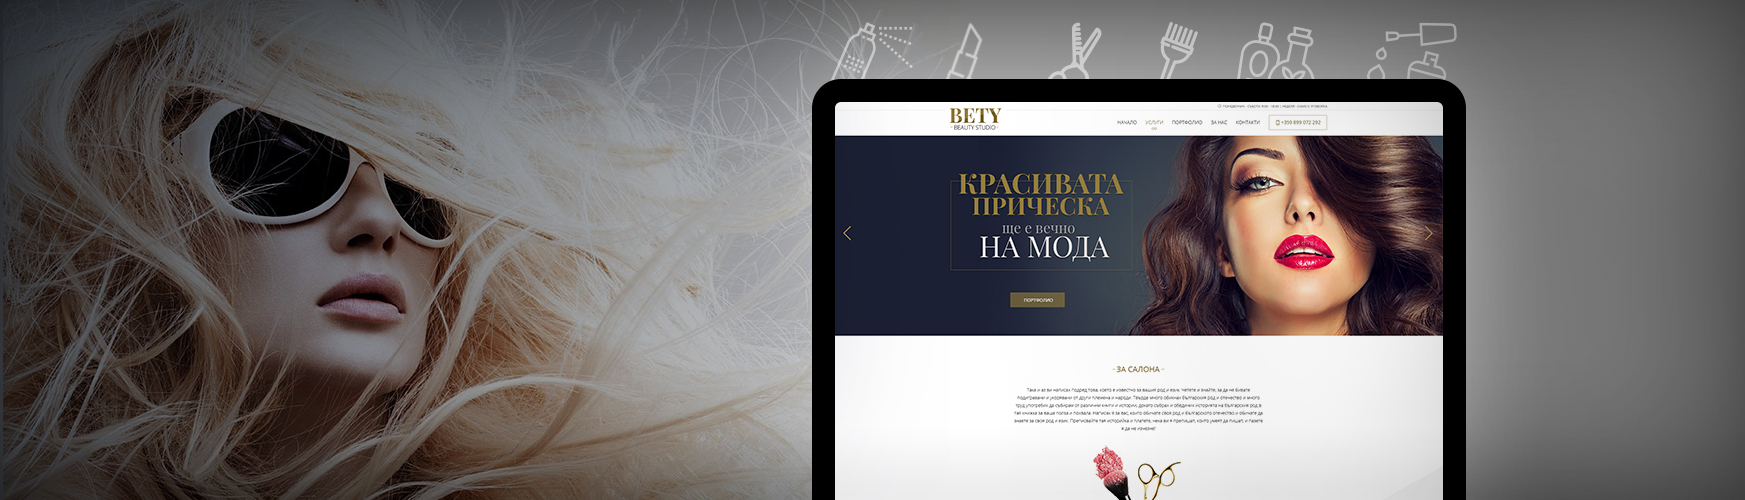 Изработка на WordPress-сайт за салон за красота Beauty Studio Bety